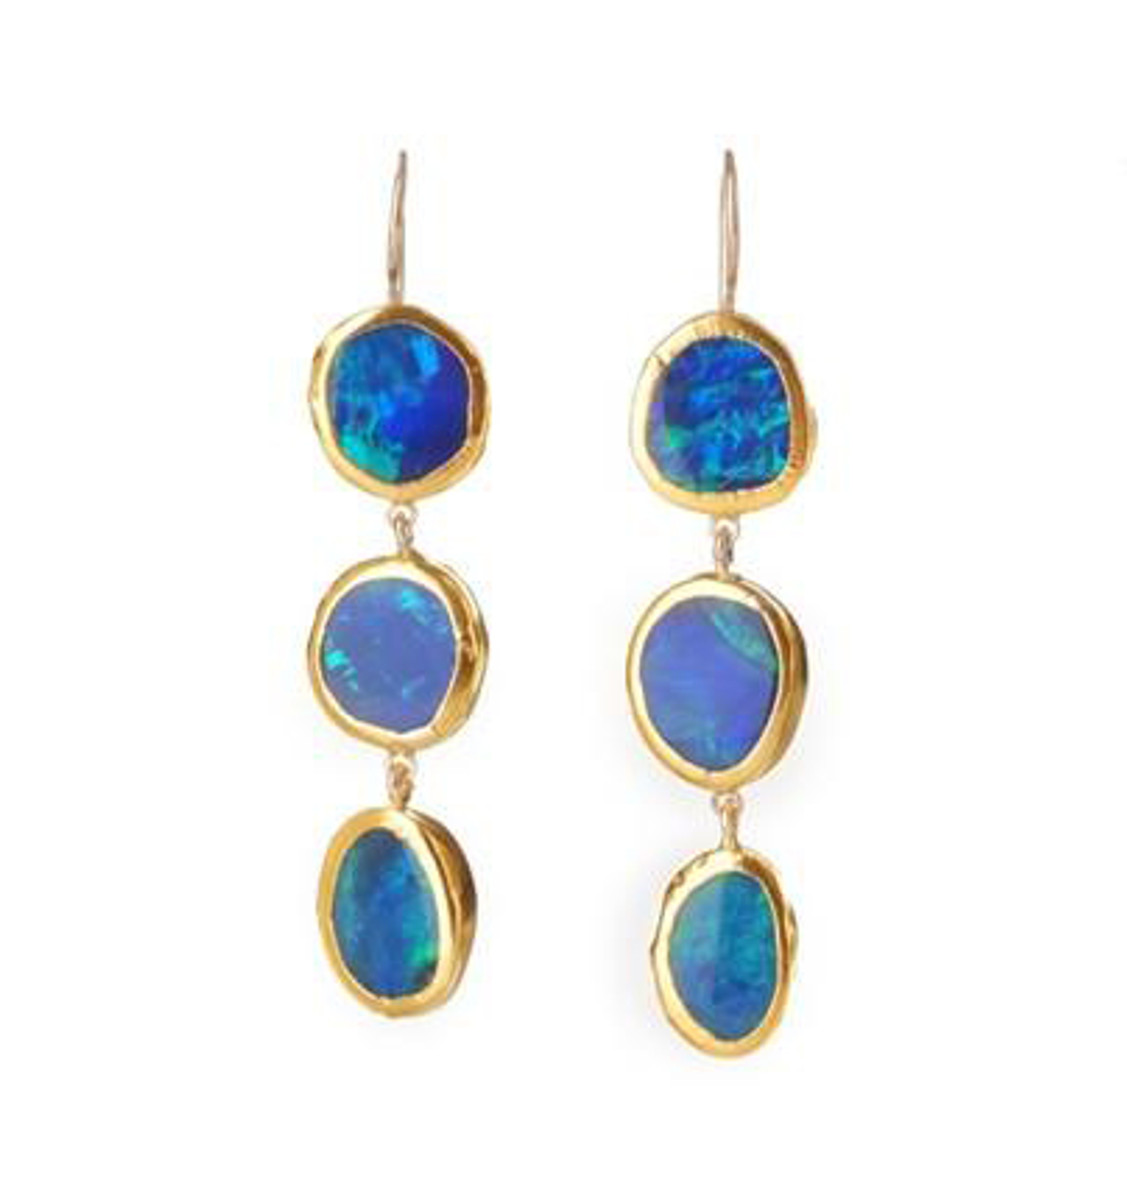 Long Bright Blue Opal Earrings by Nava Zahavi - New Arrival